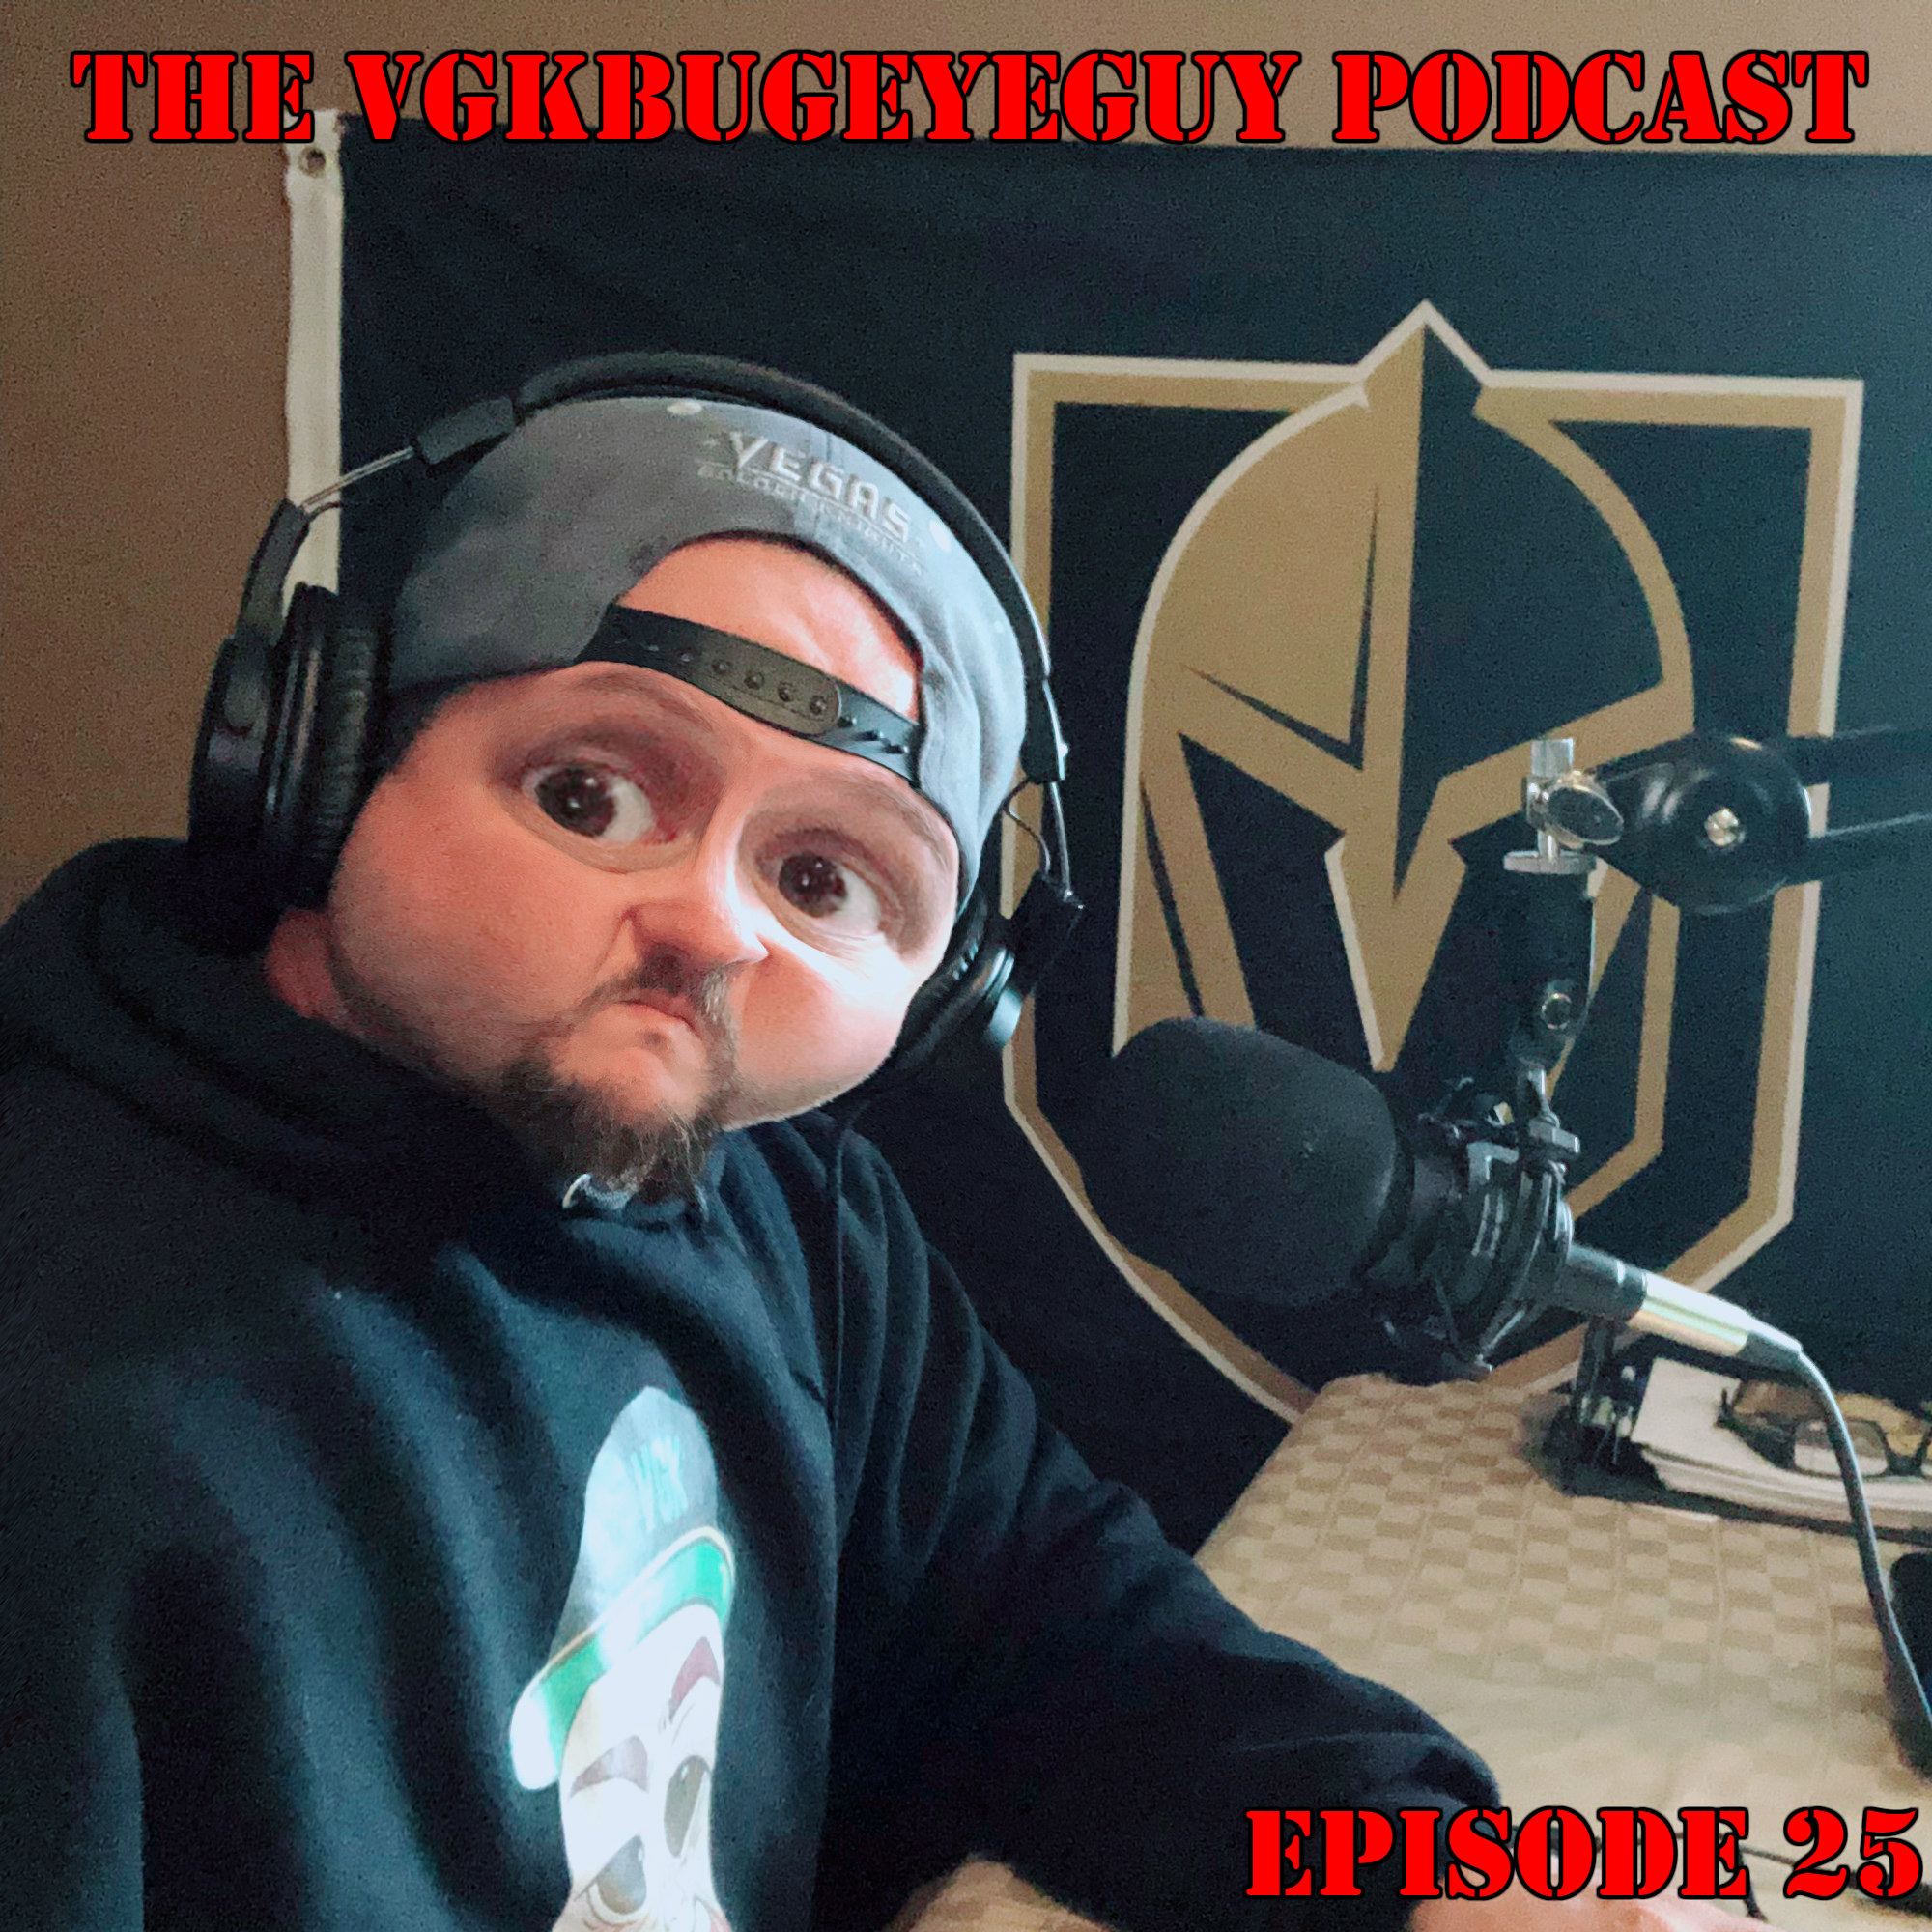 Episode 25: 6 Wins in a row, Subban finally plays in Vegas, Kings and Ducks struggle against the Golden Knights